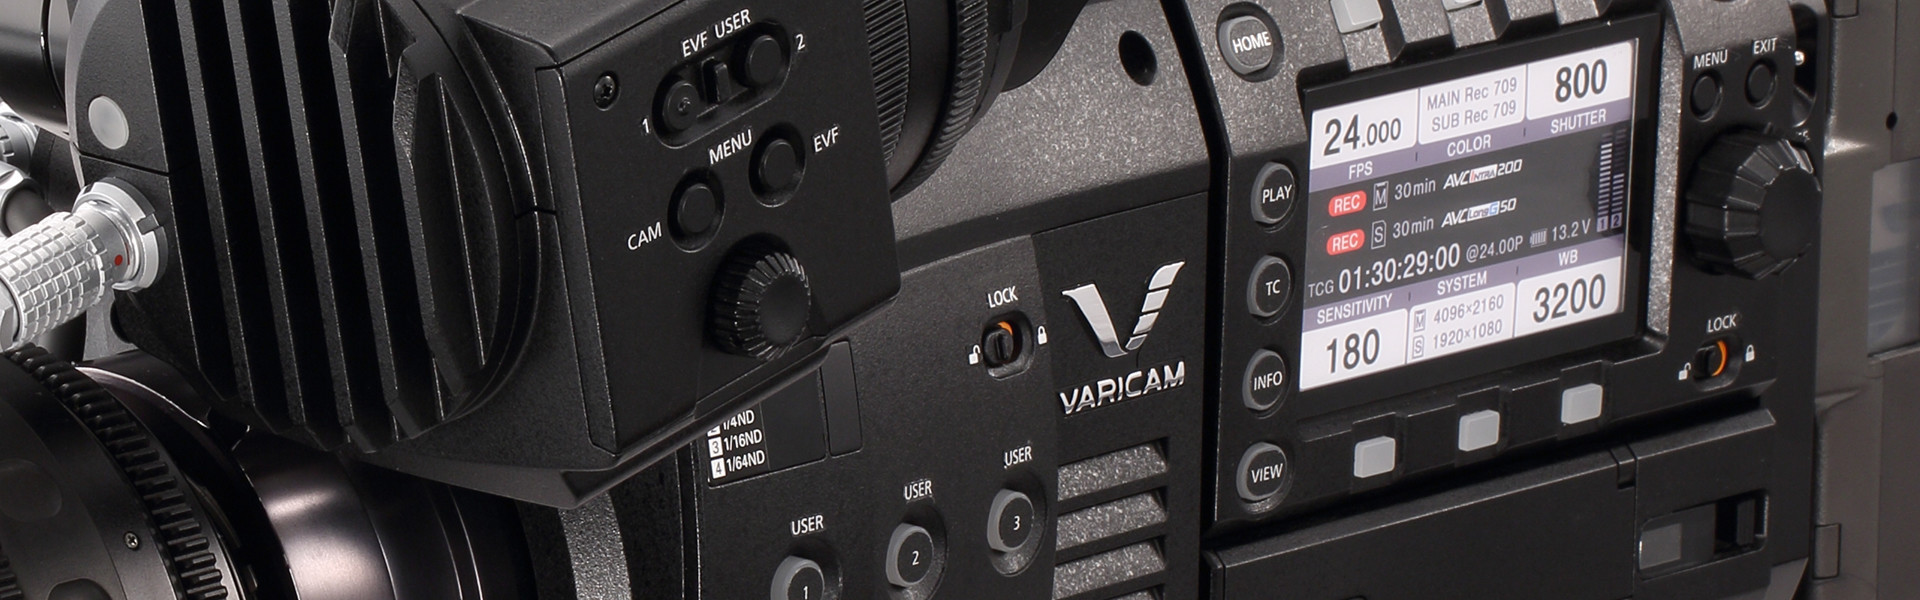 Header image for article Panasonic VariCam 35/HS Camera Simulator